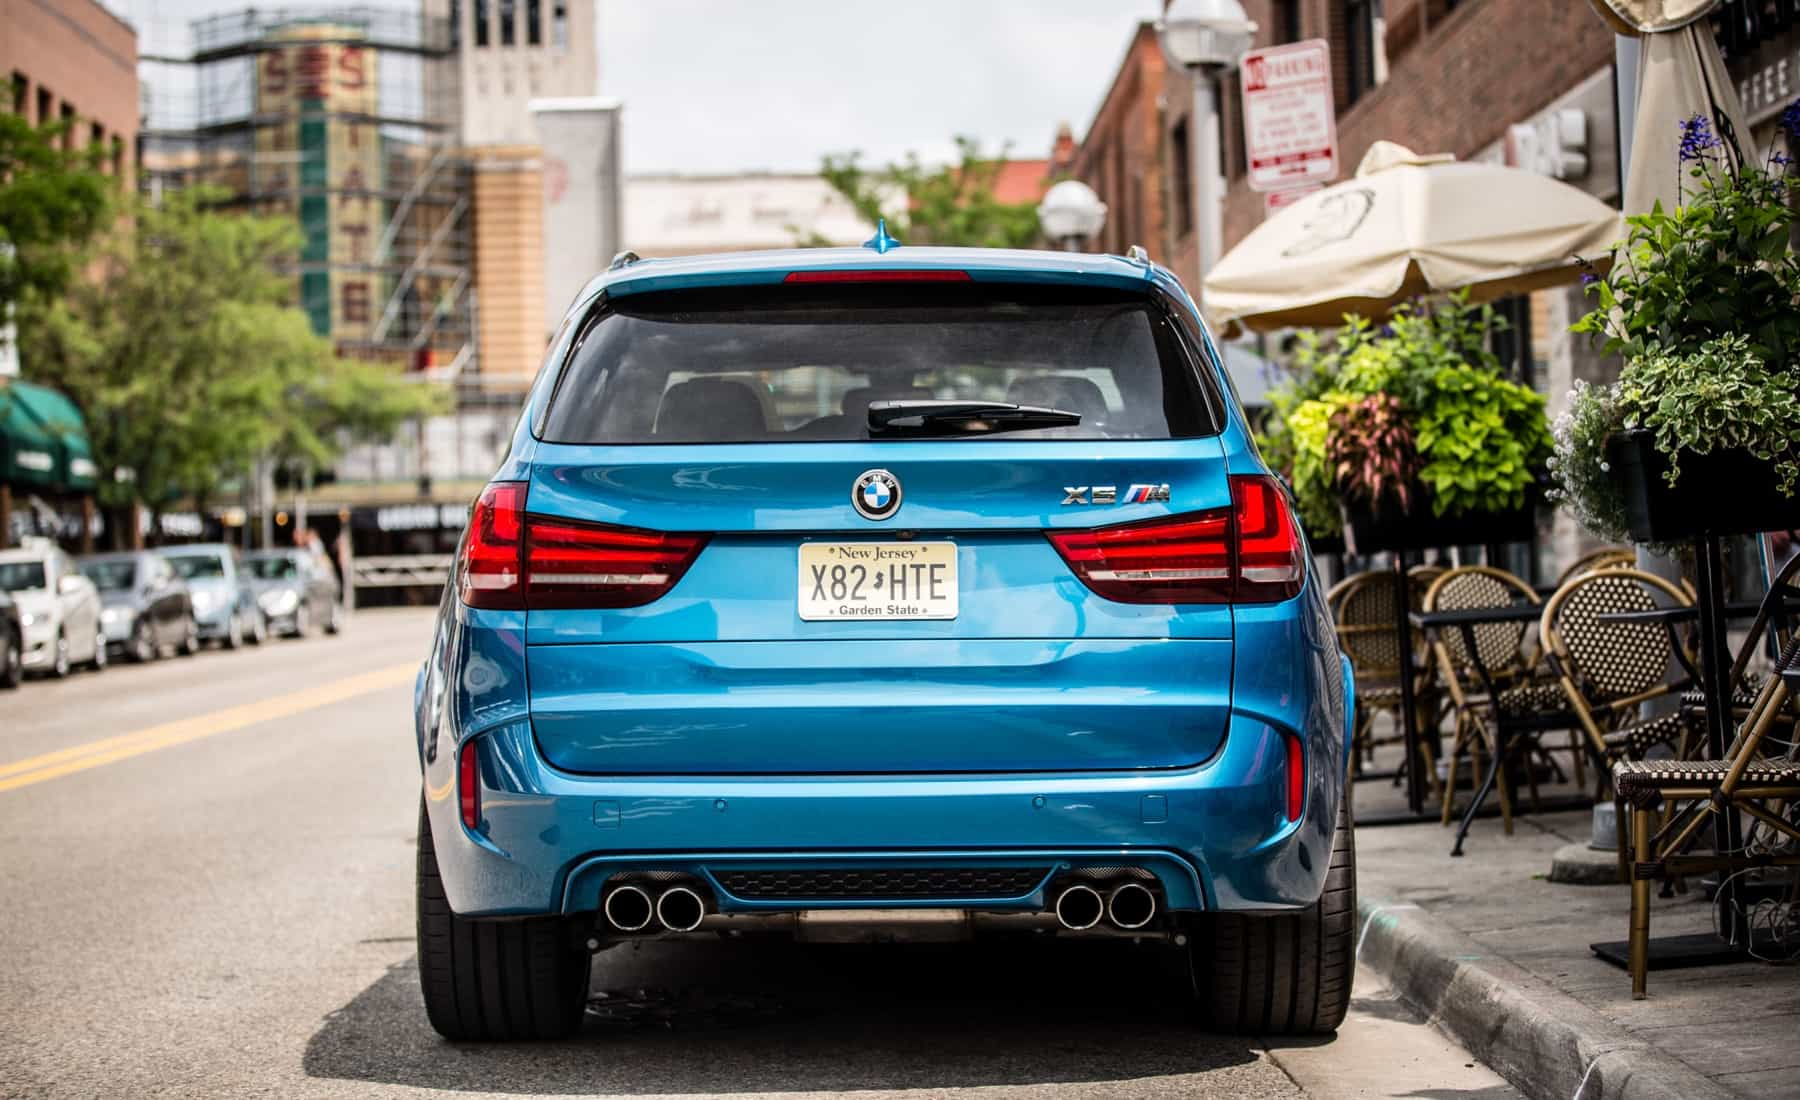 2017 BMW X5 M Exterior Rear (Photo 29 of 35)